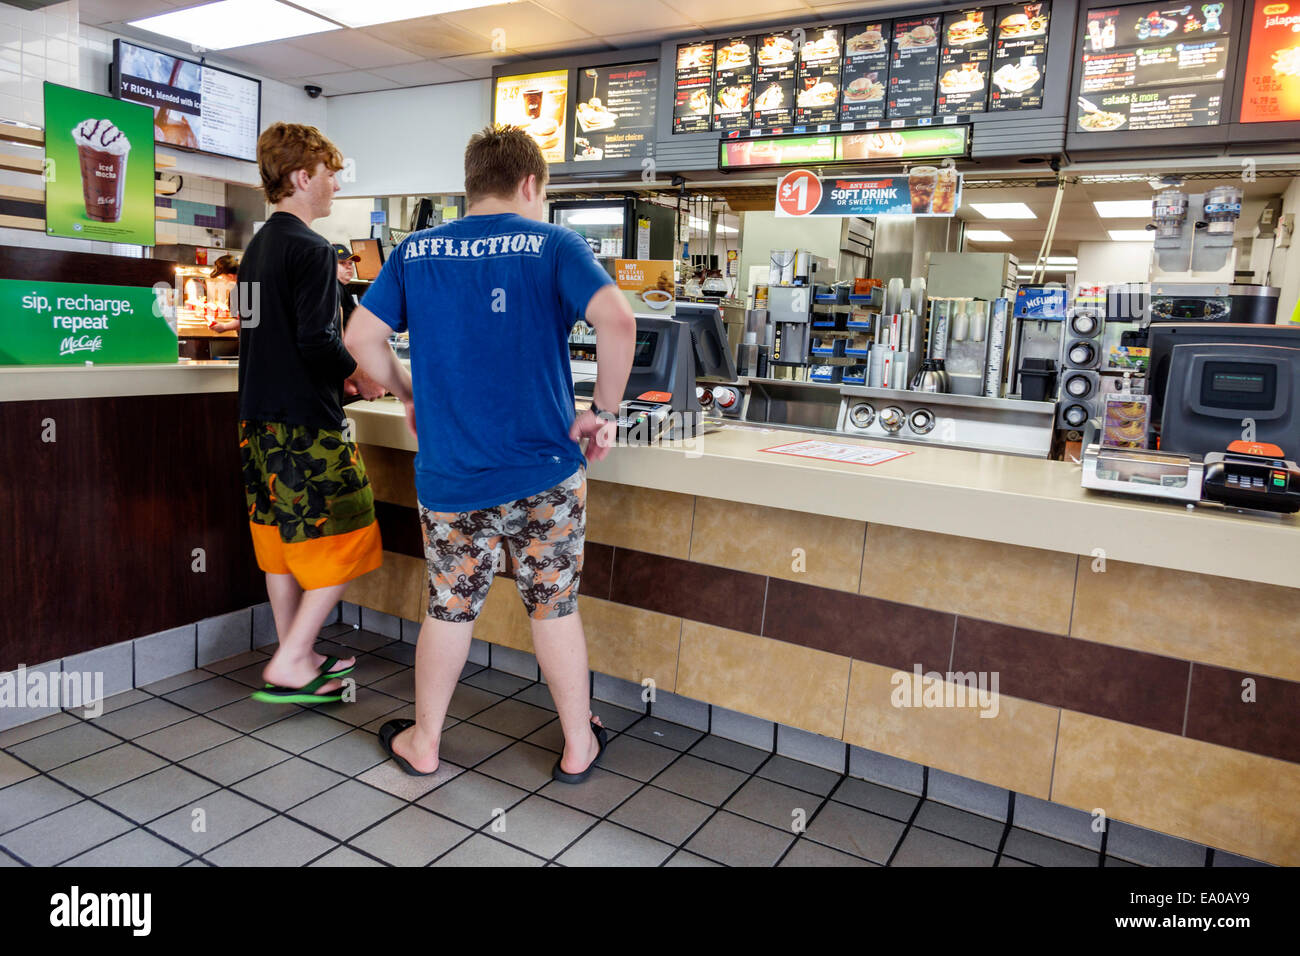 Floride Okeechobee McDonald's restaurant fast food à l'intérieur de contre-teen boy amis clients Photo Stock